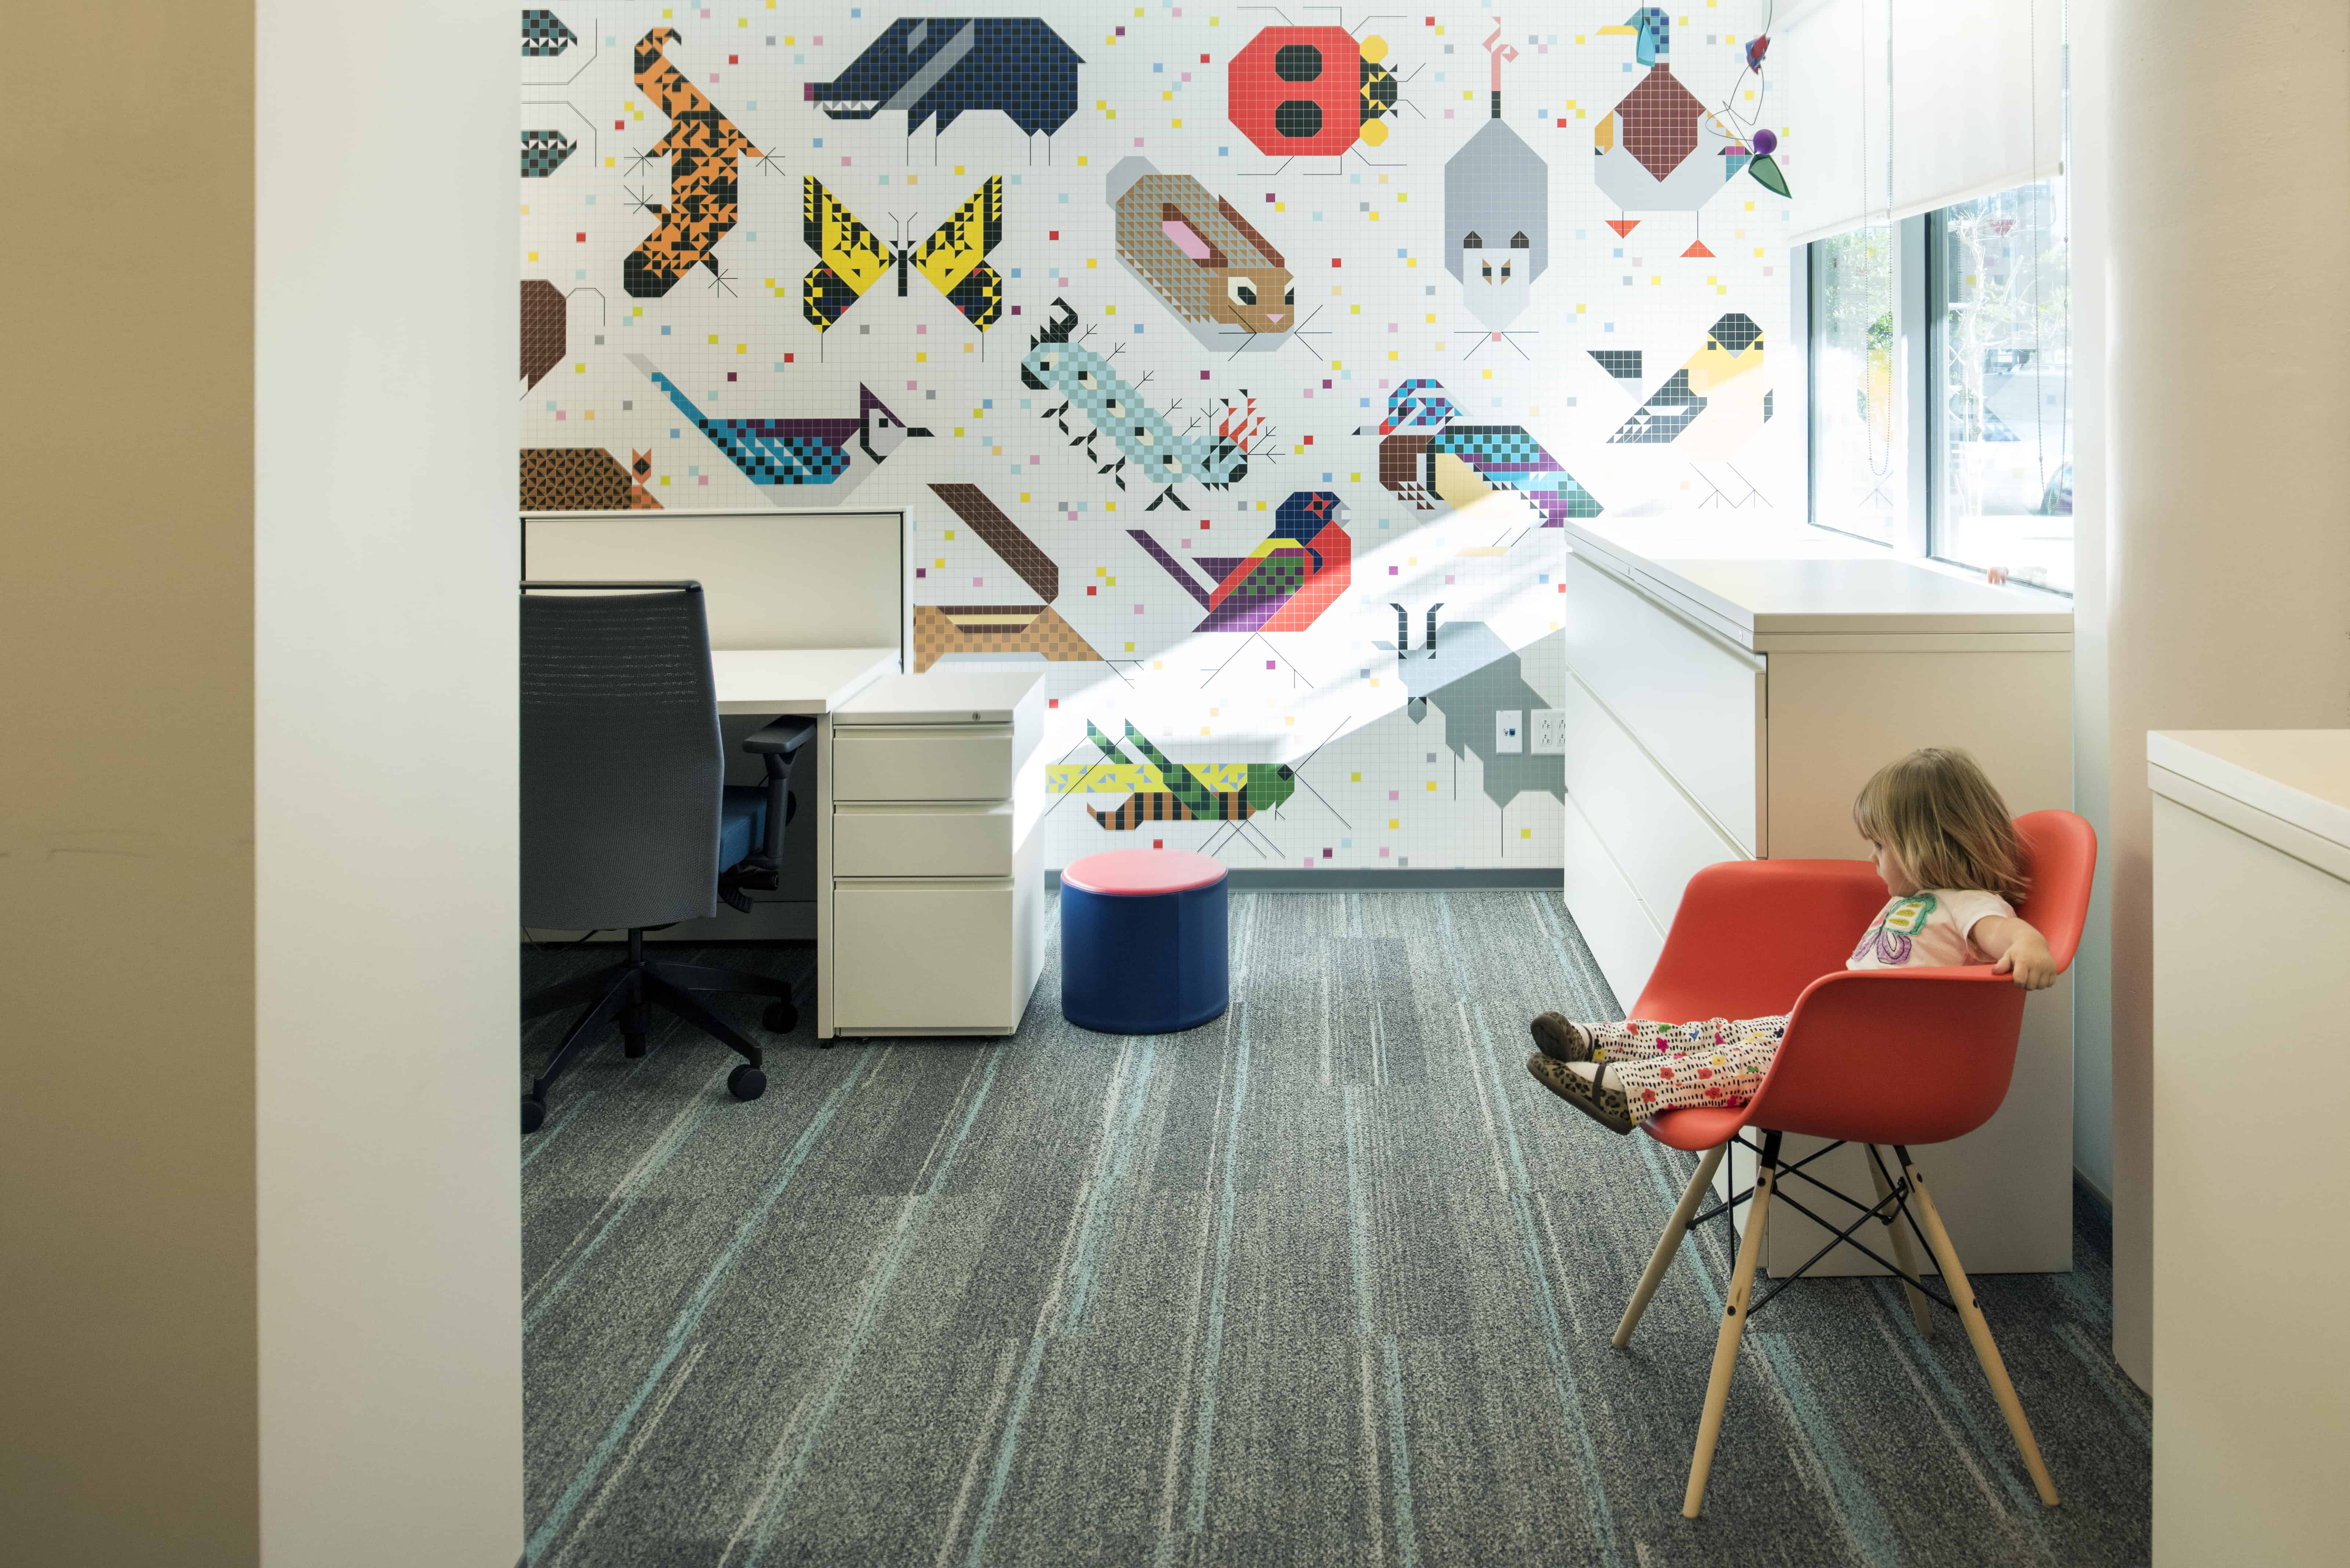 Graphic mural at interior office space